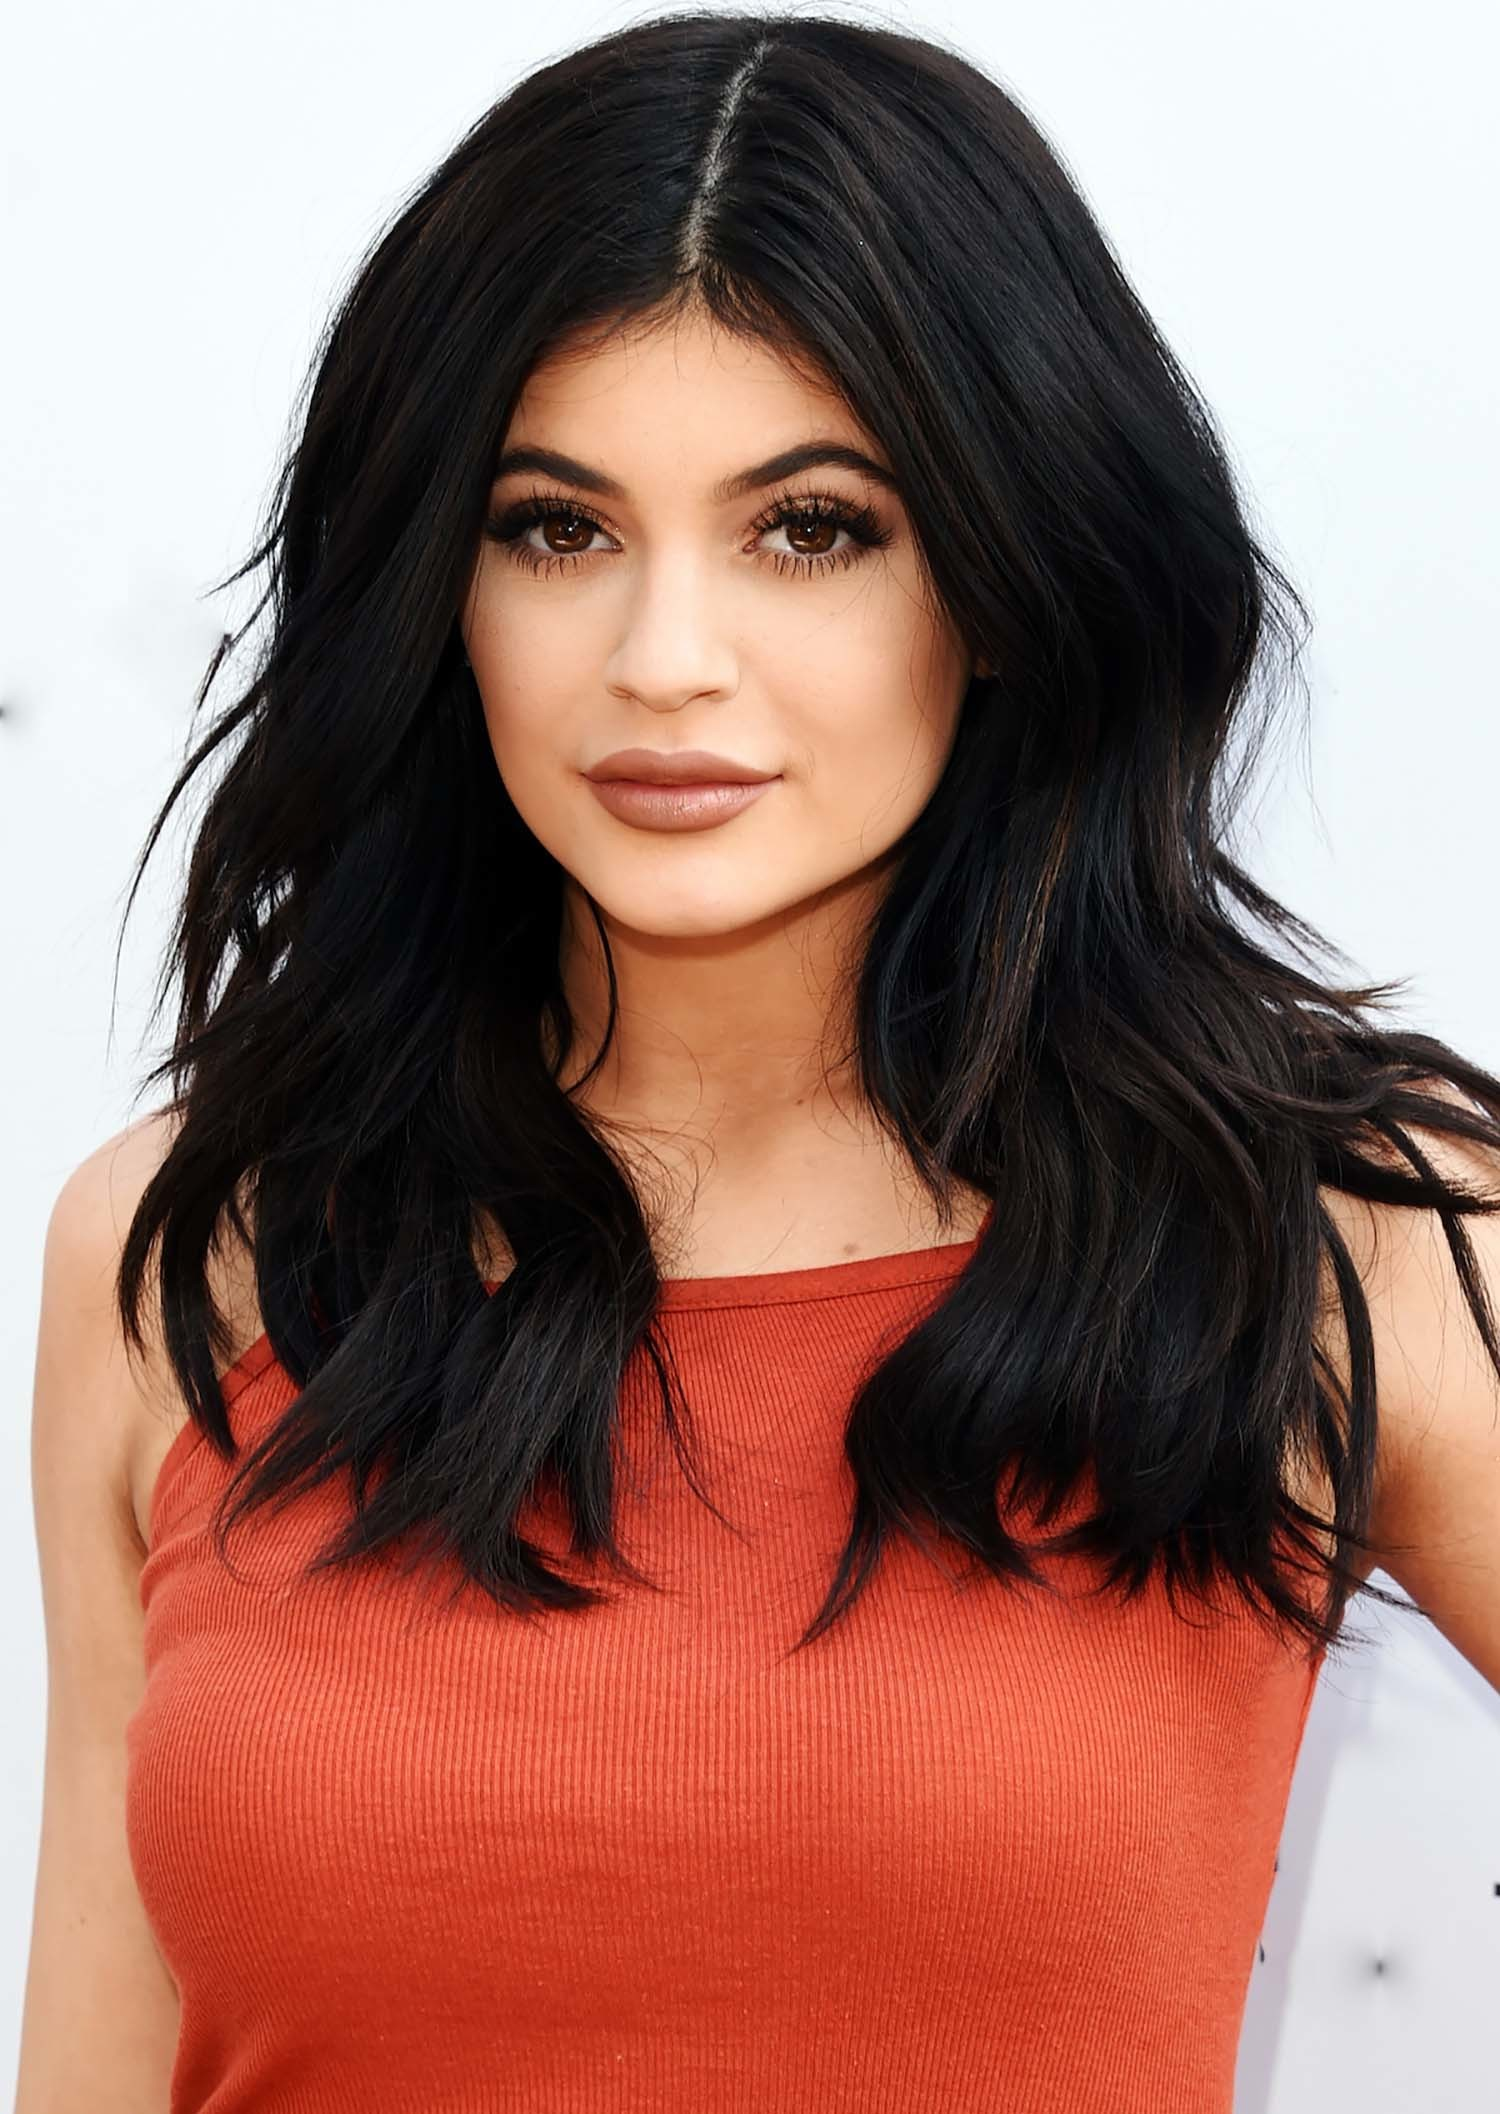 Kylie Jenner Arrives On The Red Carpet At Our Balmain X H: Kylie Jenner Wallpapers ·①